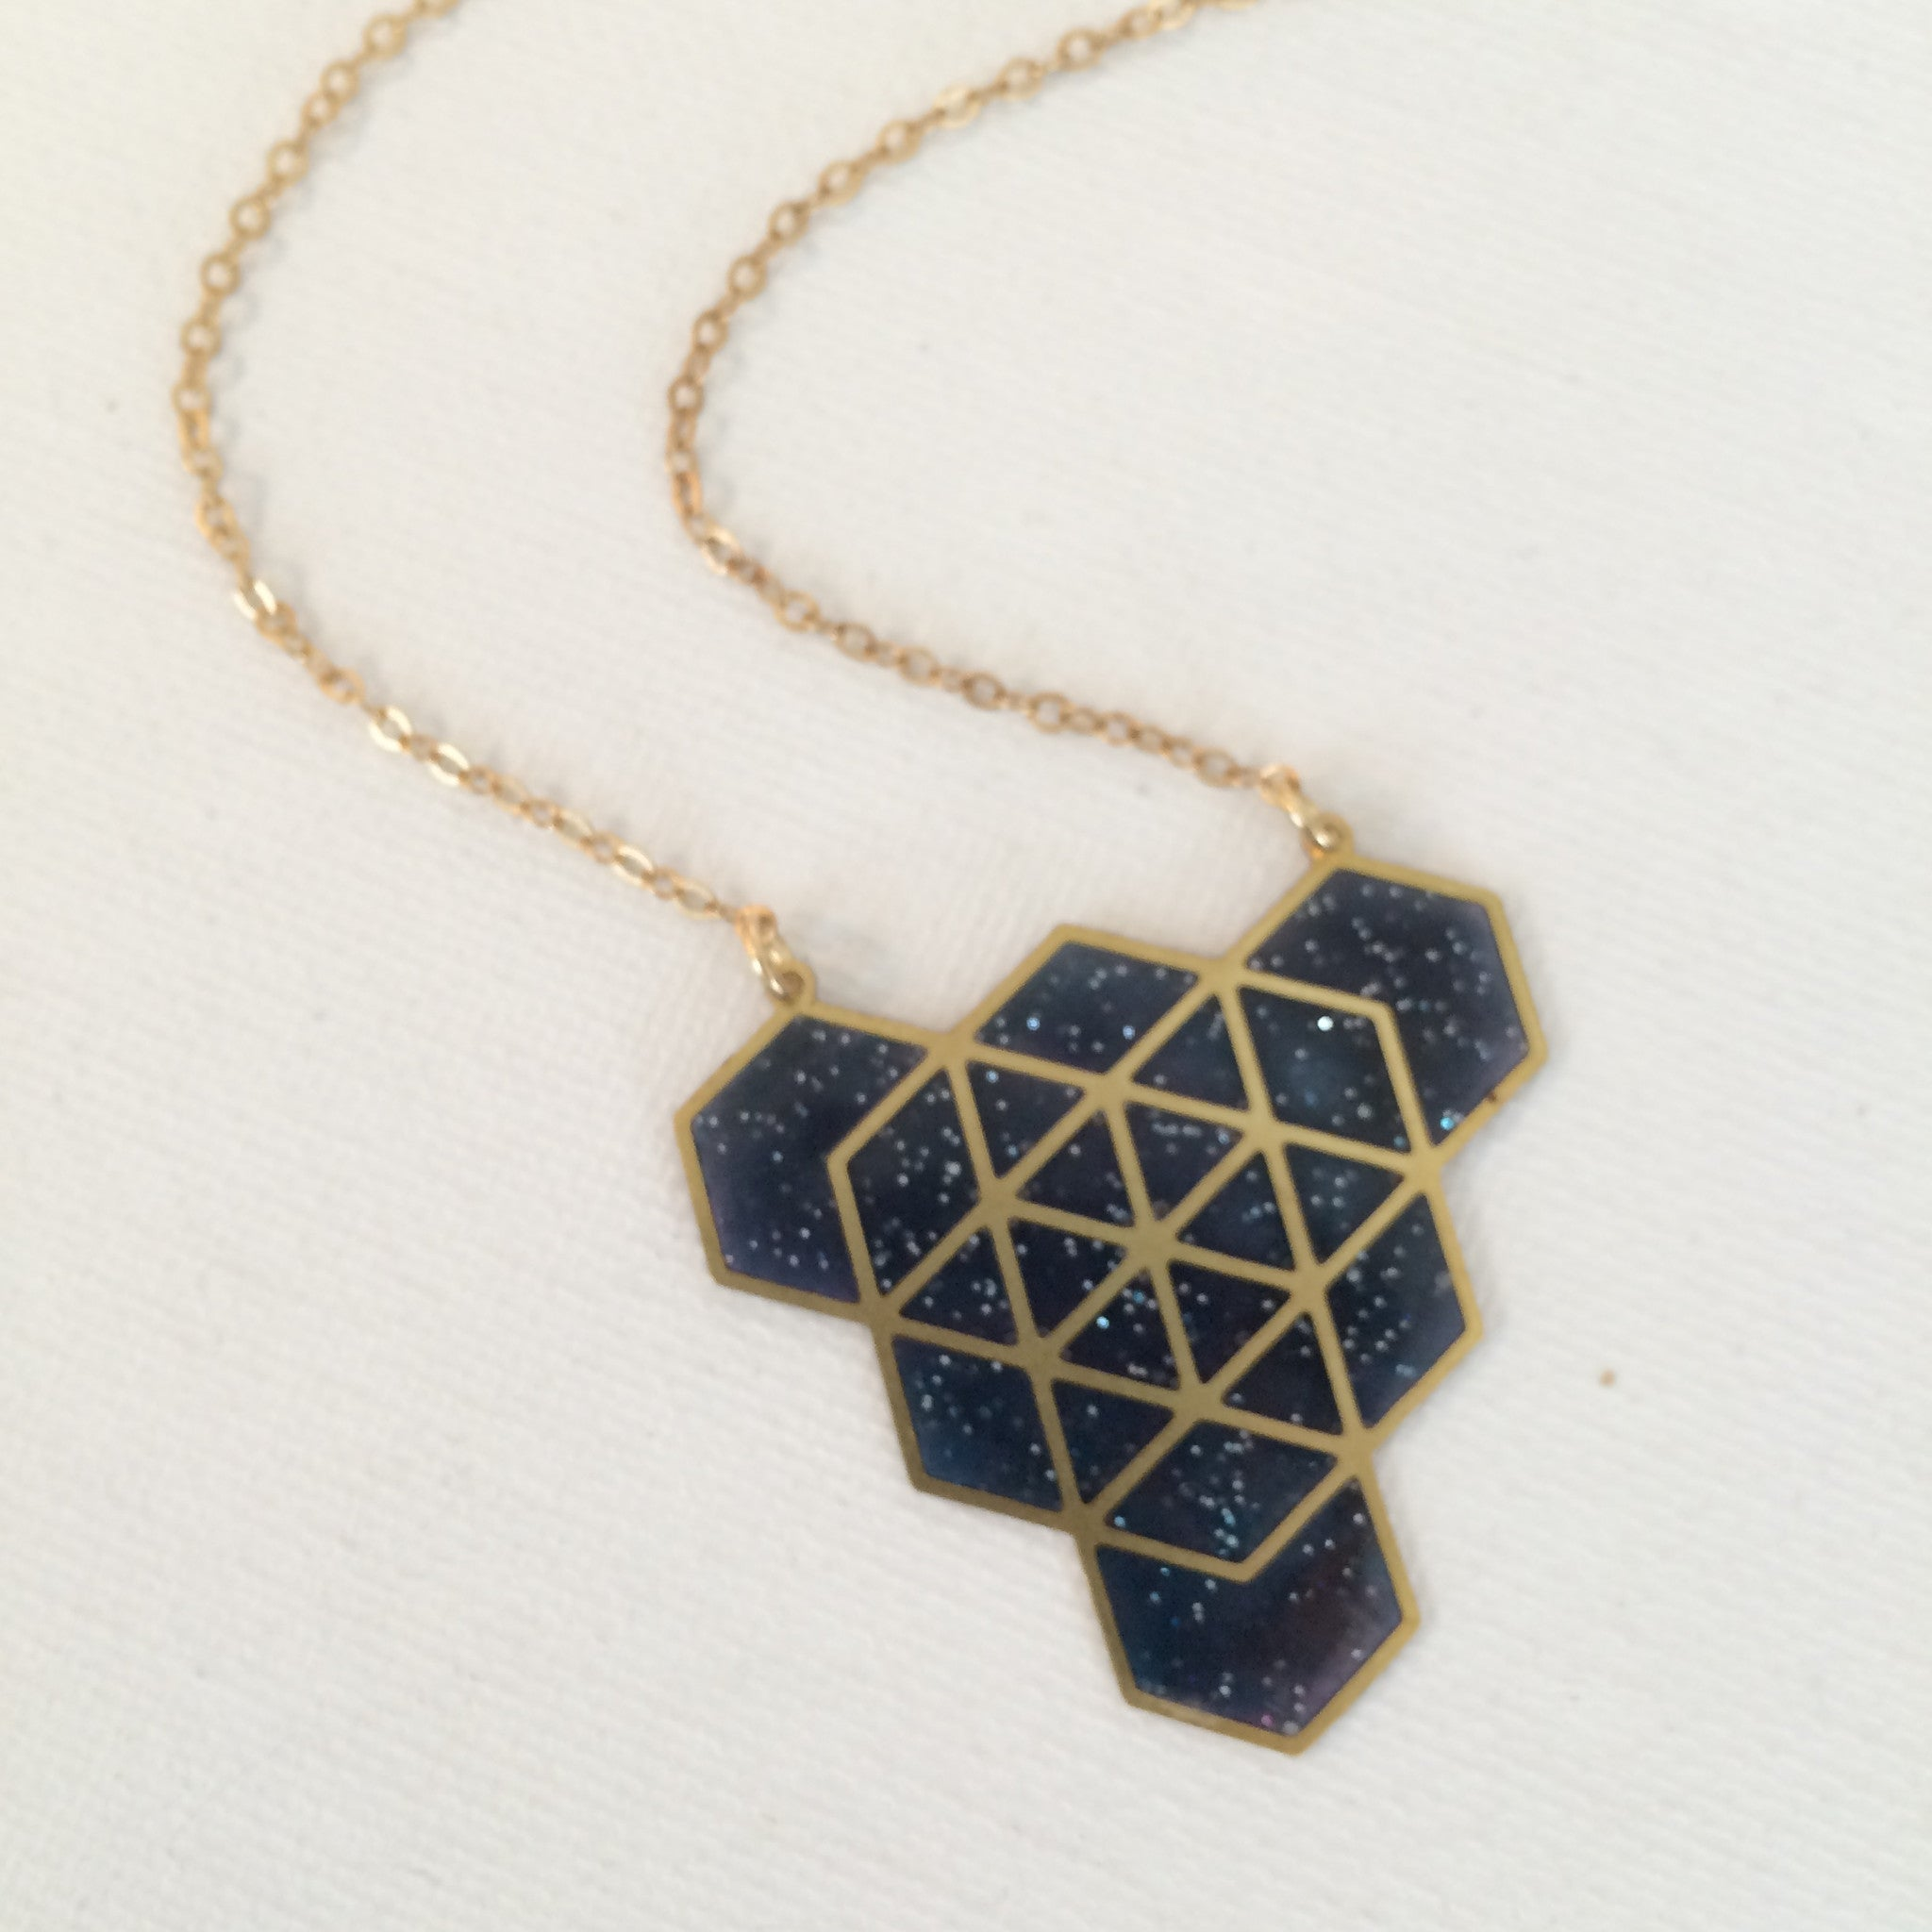 Brass Hexagons with Resin Necklace